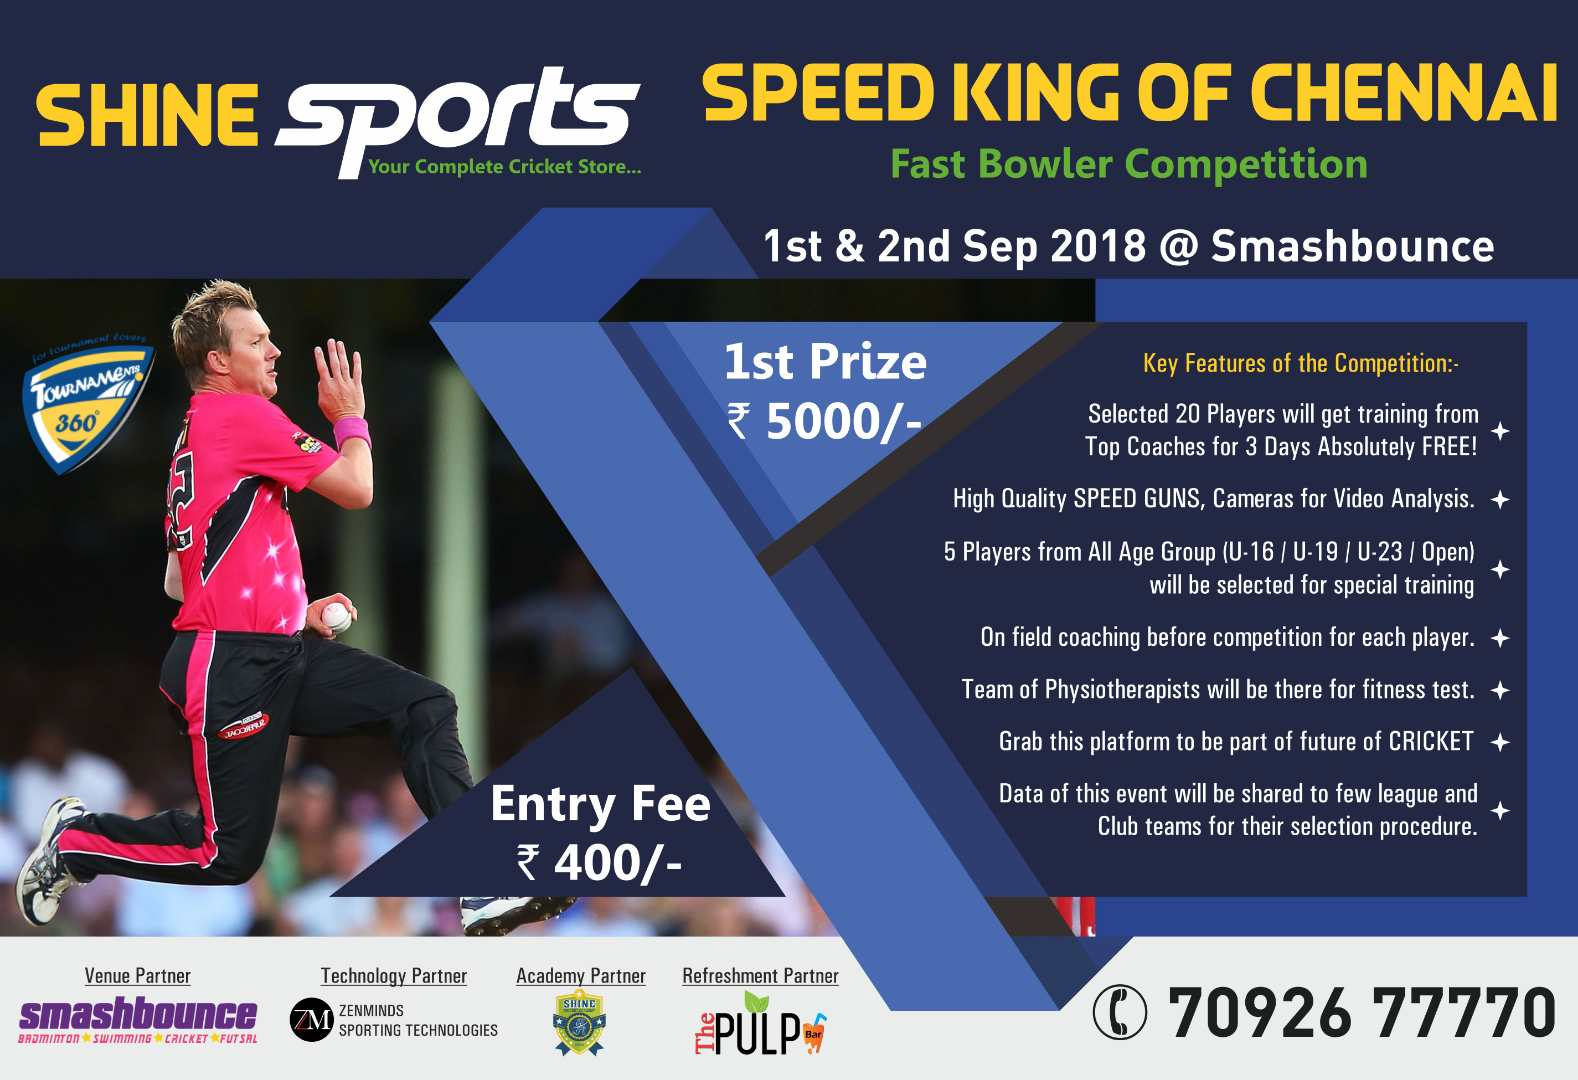 Speed King of Chennai Fast Bowler Competition